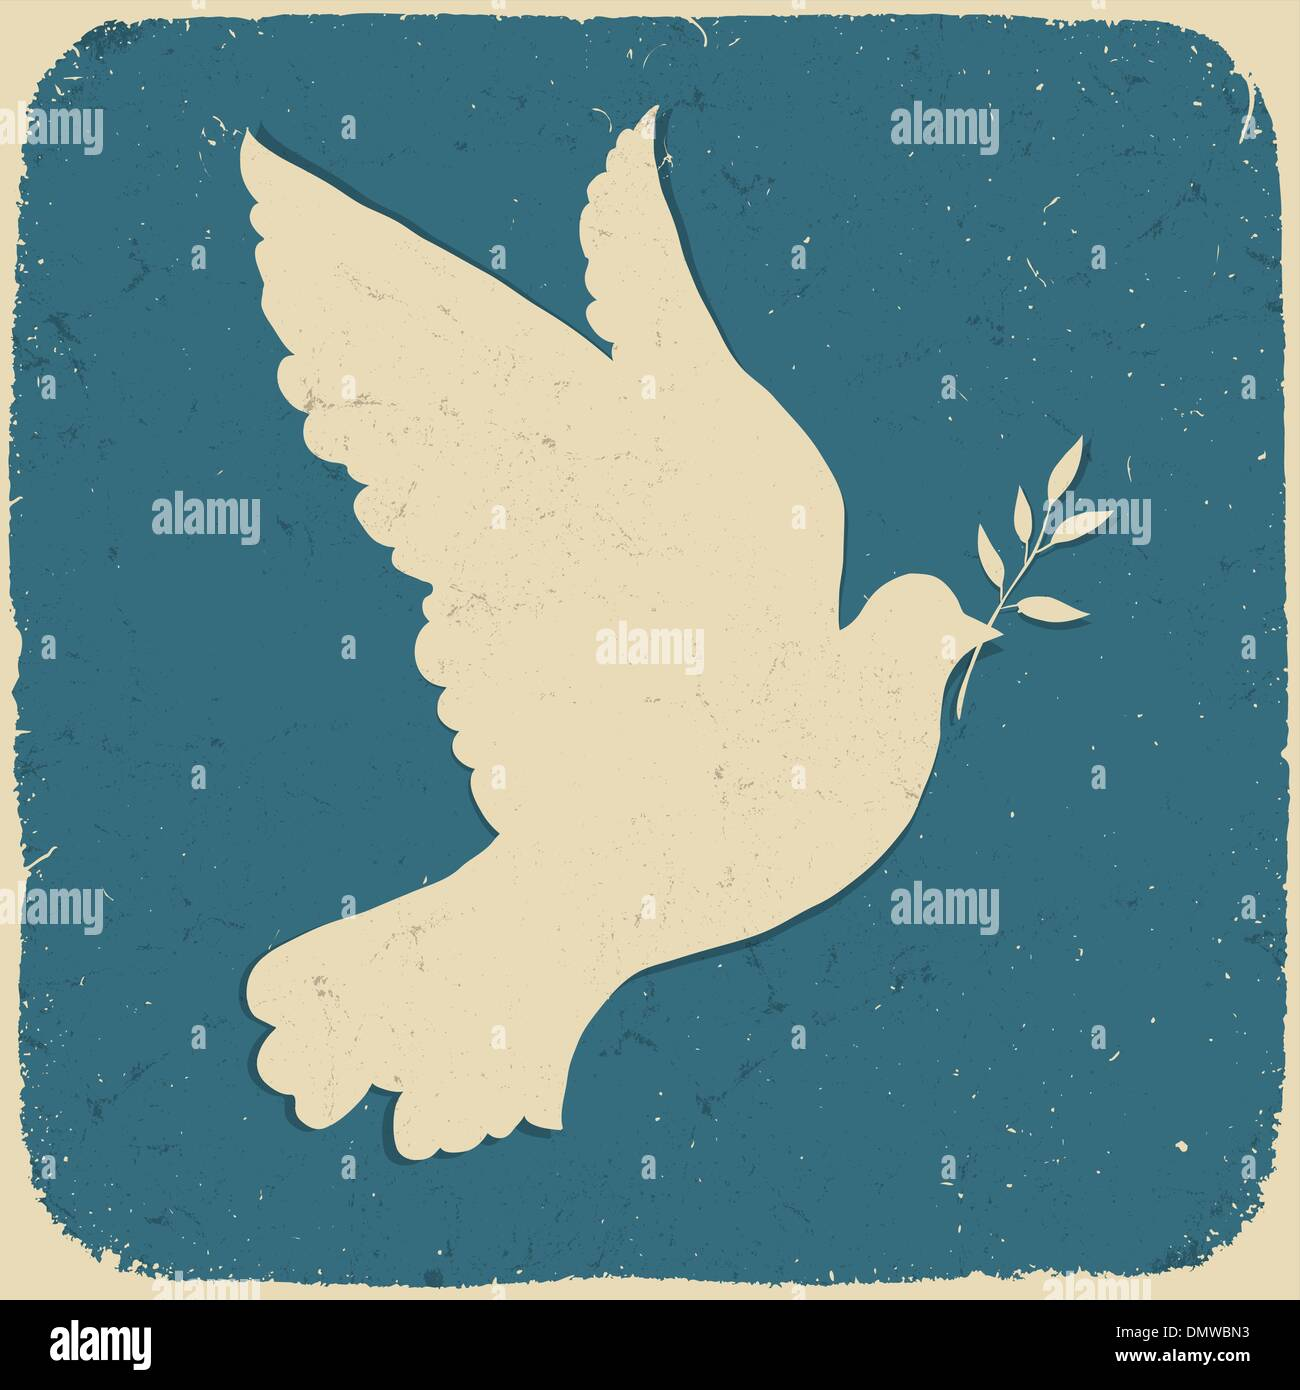 Dove of Peace. Retro styled illustration, vector, eps10. - Stock Image